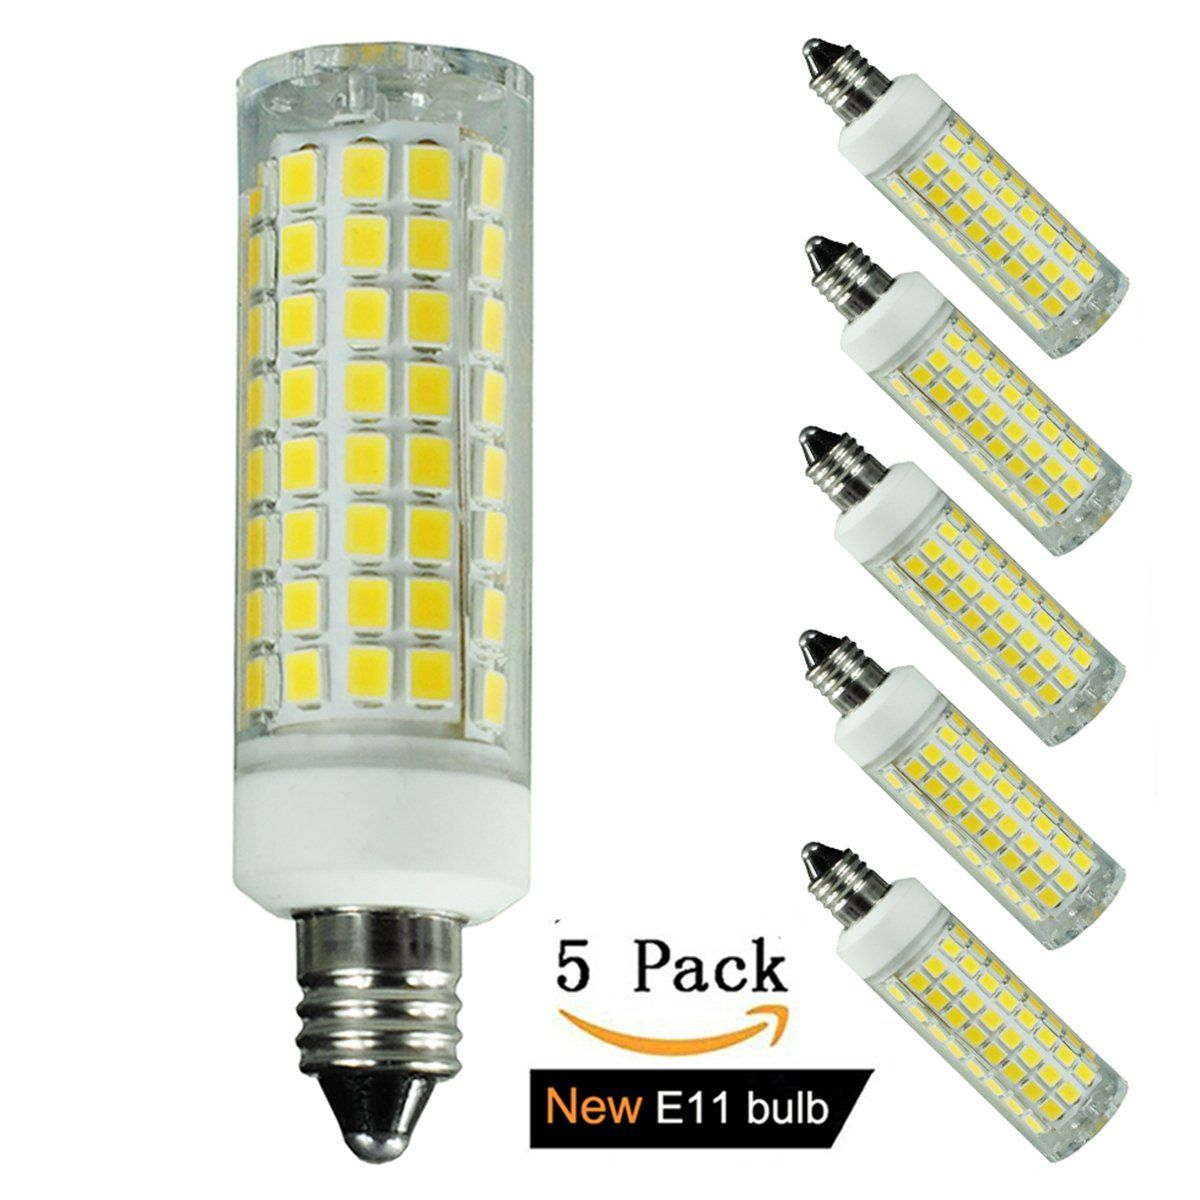 E11 Led Bulb 80w Or 110w Equivalent Halogen Replacement Lights Dimmable Mini Candelabra Base 1000 Lumens Daylight 6000k Ac110v 1 Led Bulb Bulb Light Bulb